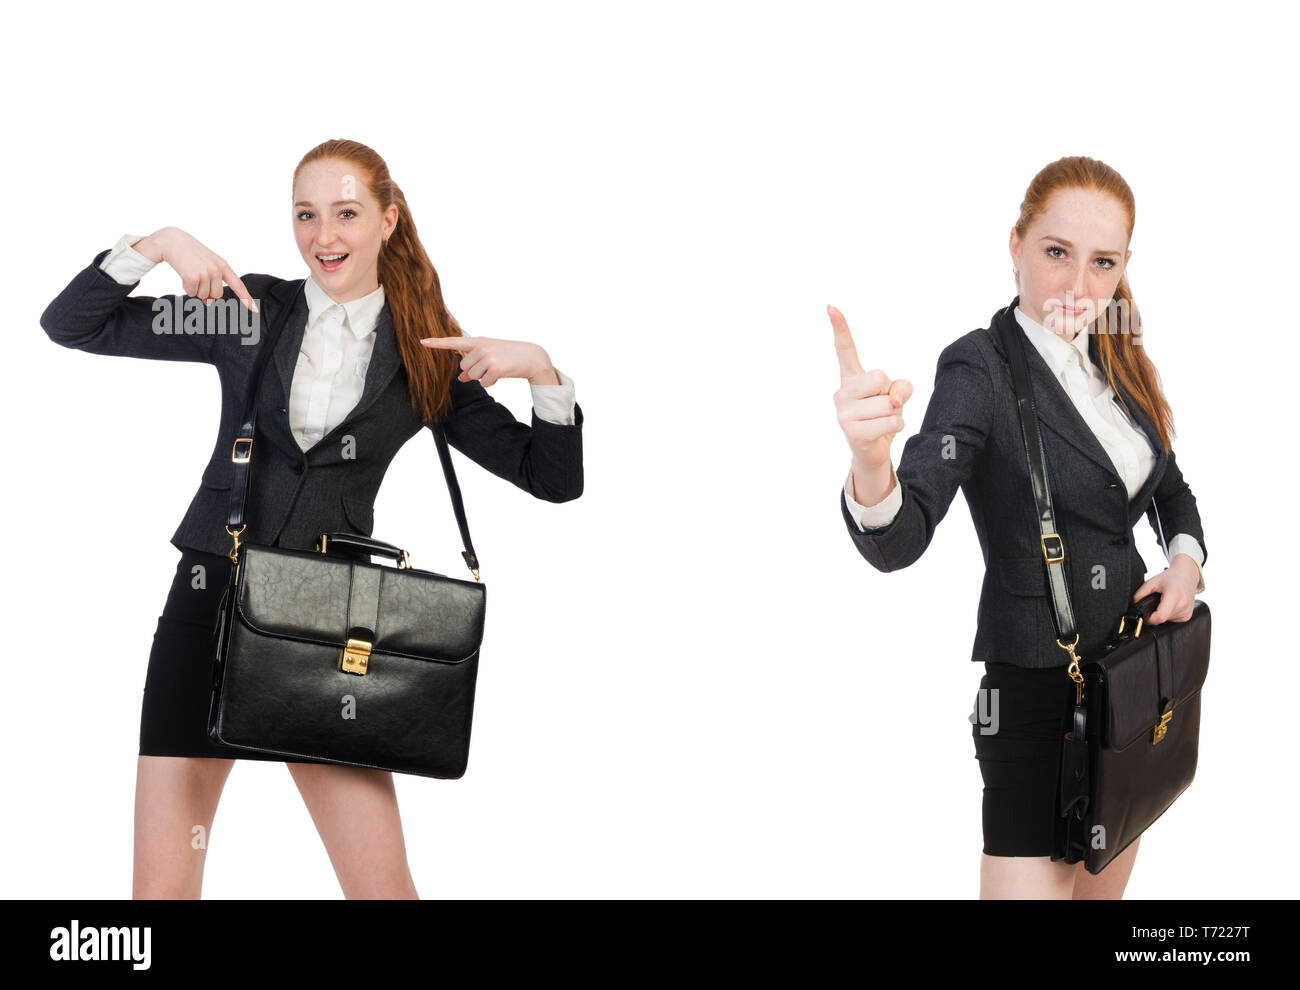 Businesswoman with handbag isolated on white - Stock Image